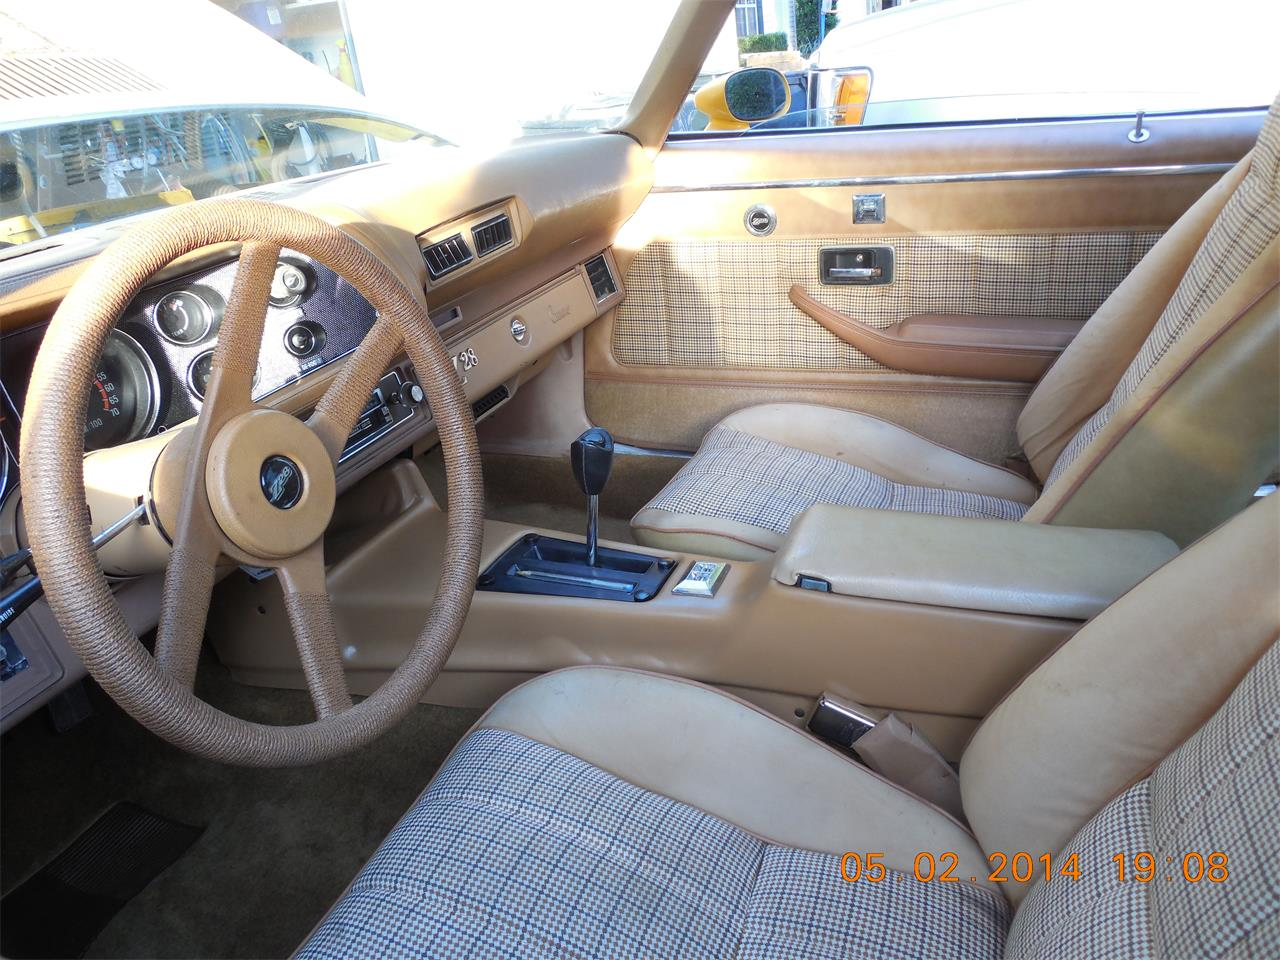 Large Picture of '78 Camaro Z28 located in North Carolina - $15,995.00 Offered by a Private Seller - DP4O